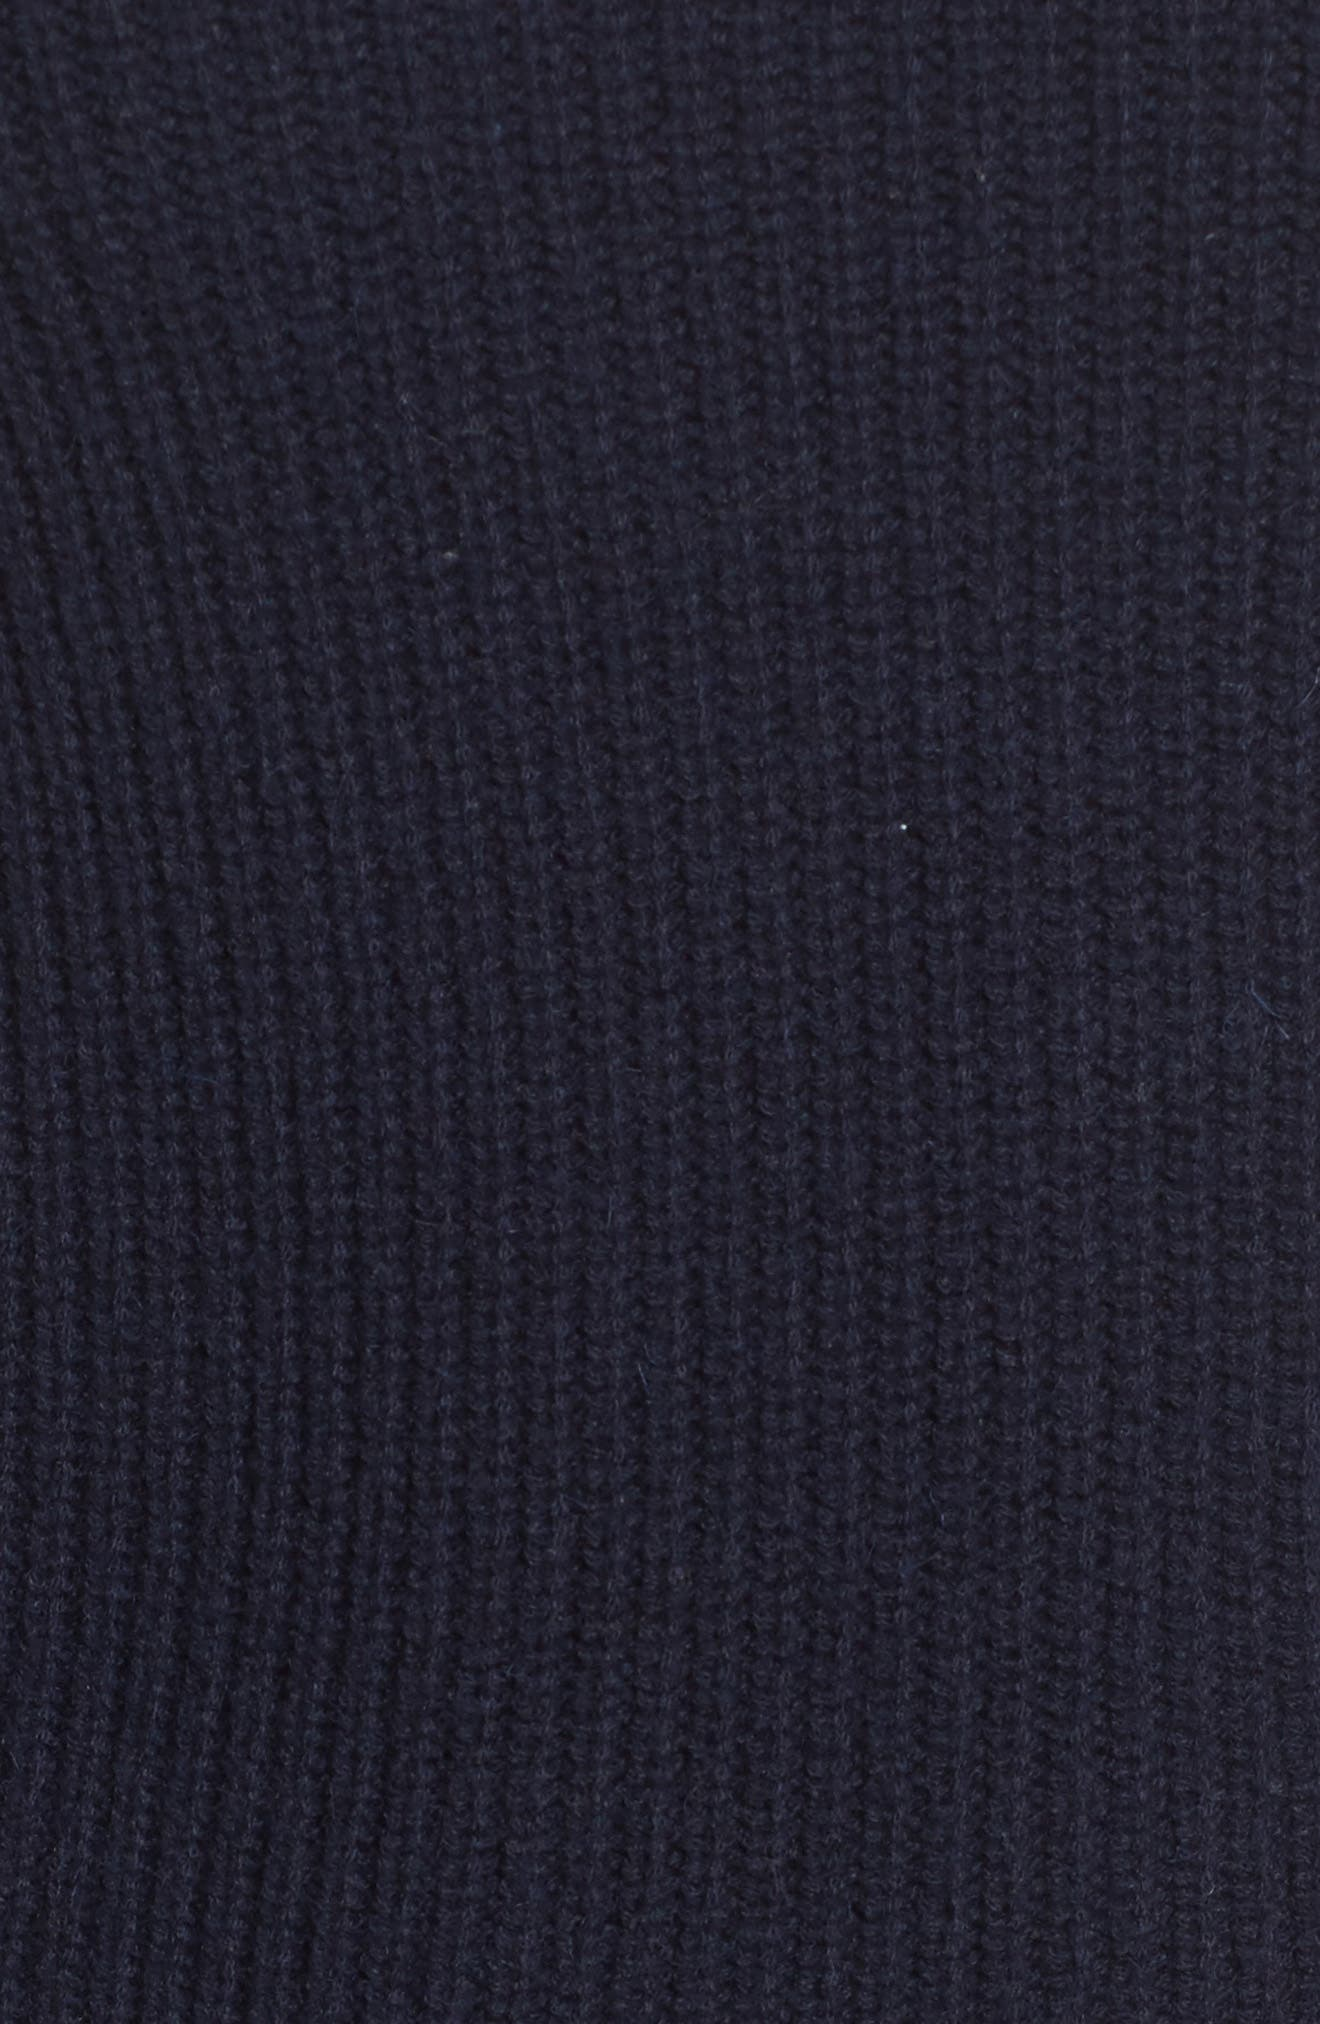 Off the Shoulder Sweater,                             Alternate thumbnail 5, color,                             Navy